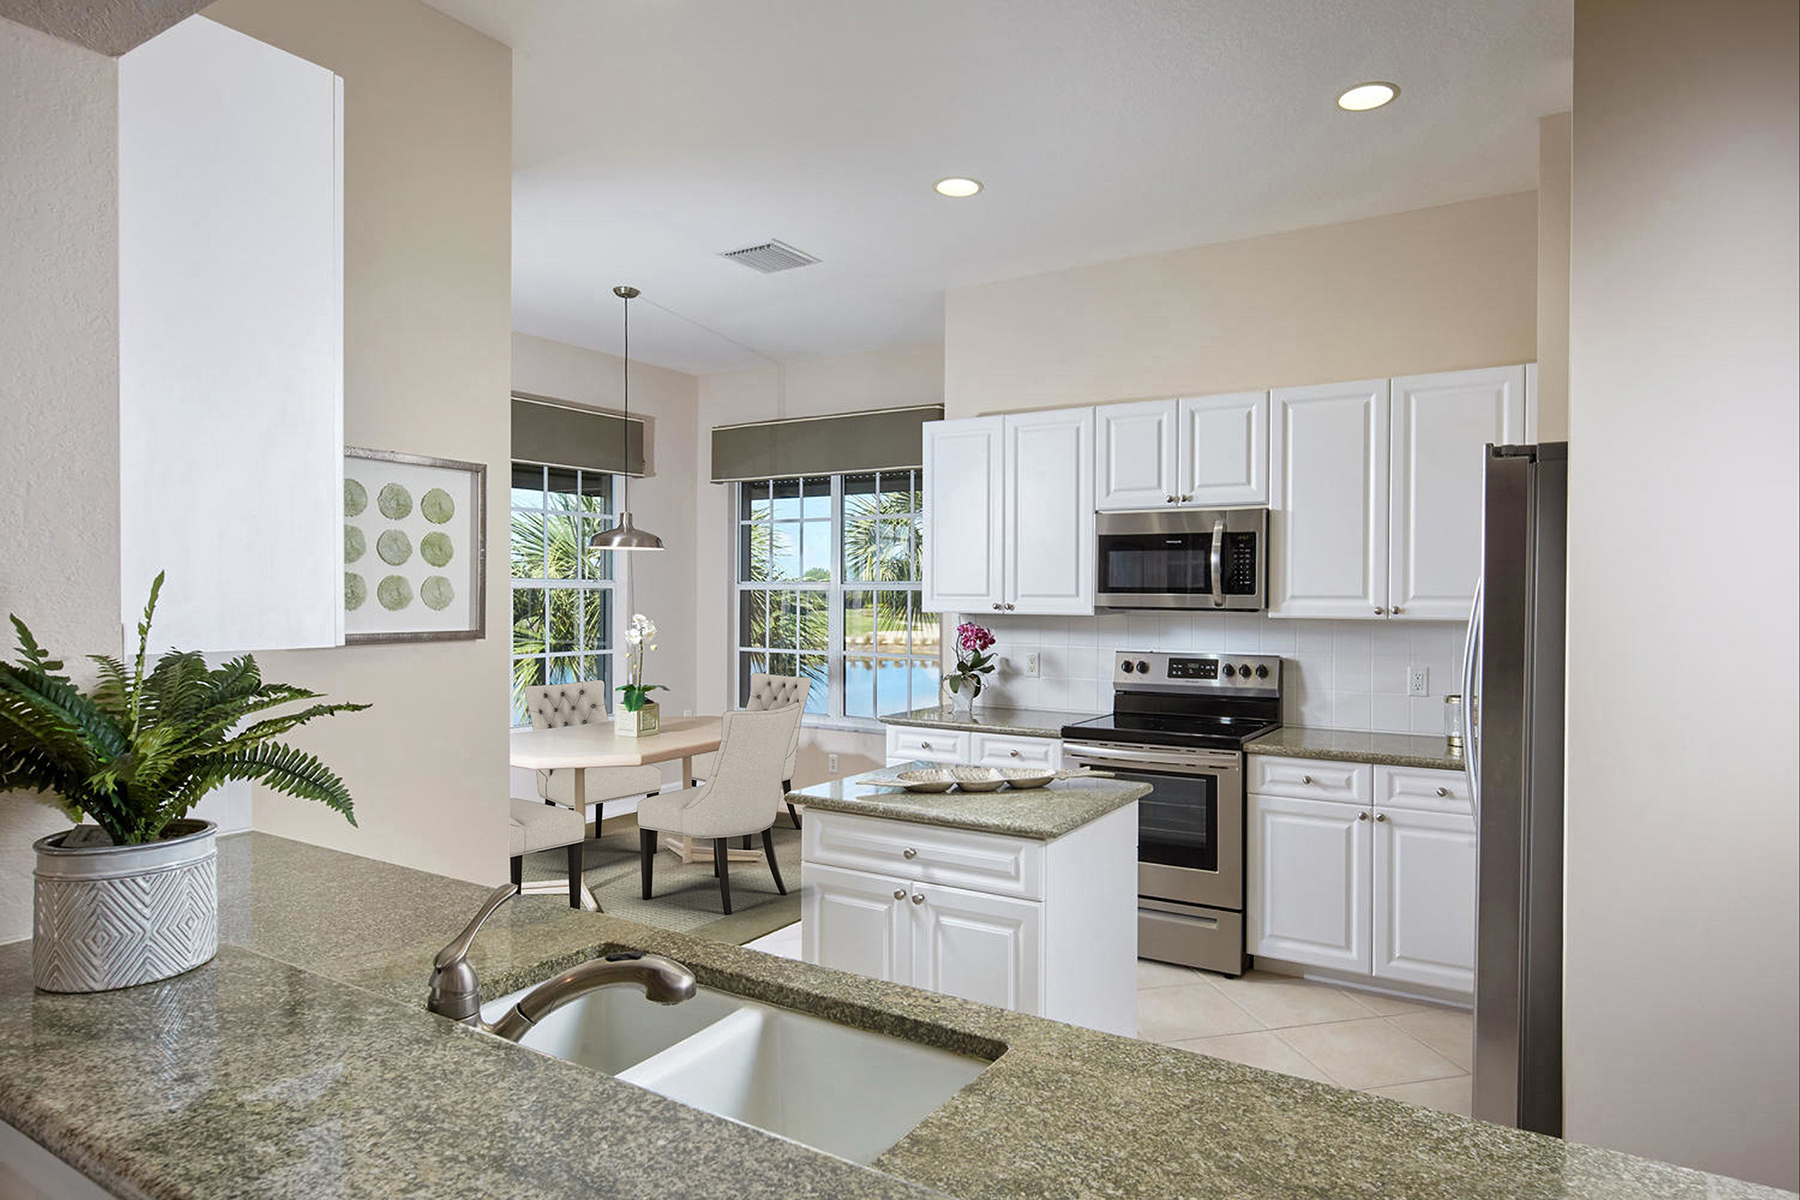 Condominiums için Satış at SHADOW WOOD AT THE BROOKS - INDIGO ISLE 9301 Indigo Isle Court , 202, Estero, Florida 34135 Amerika Birleşik Devletleri